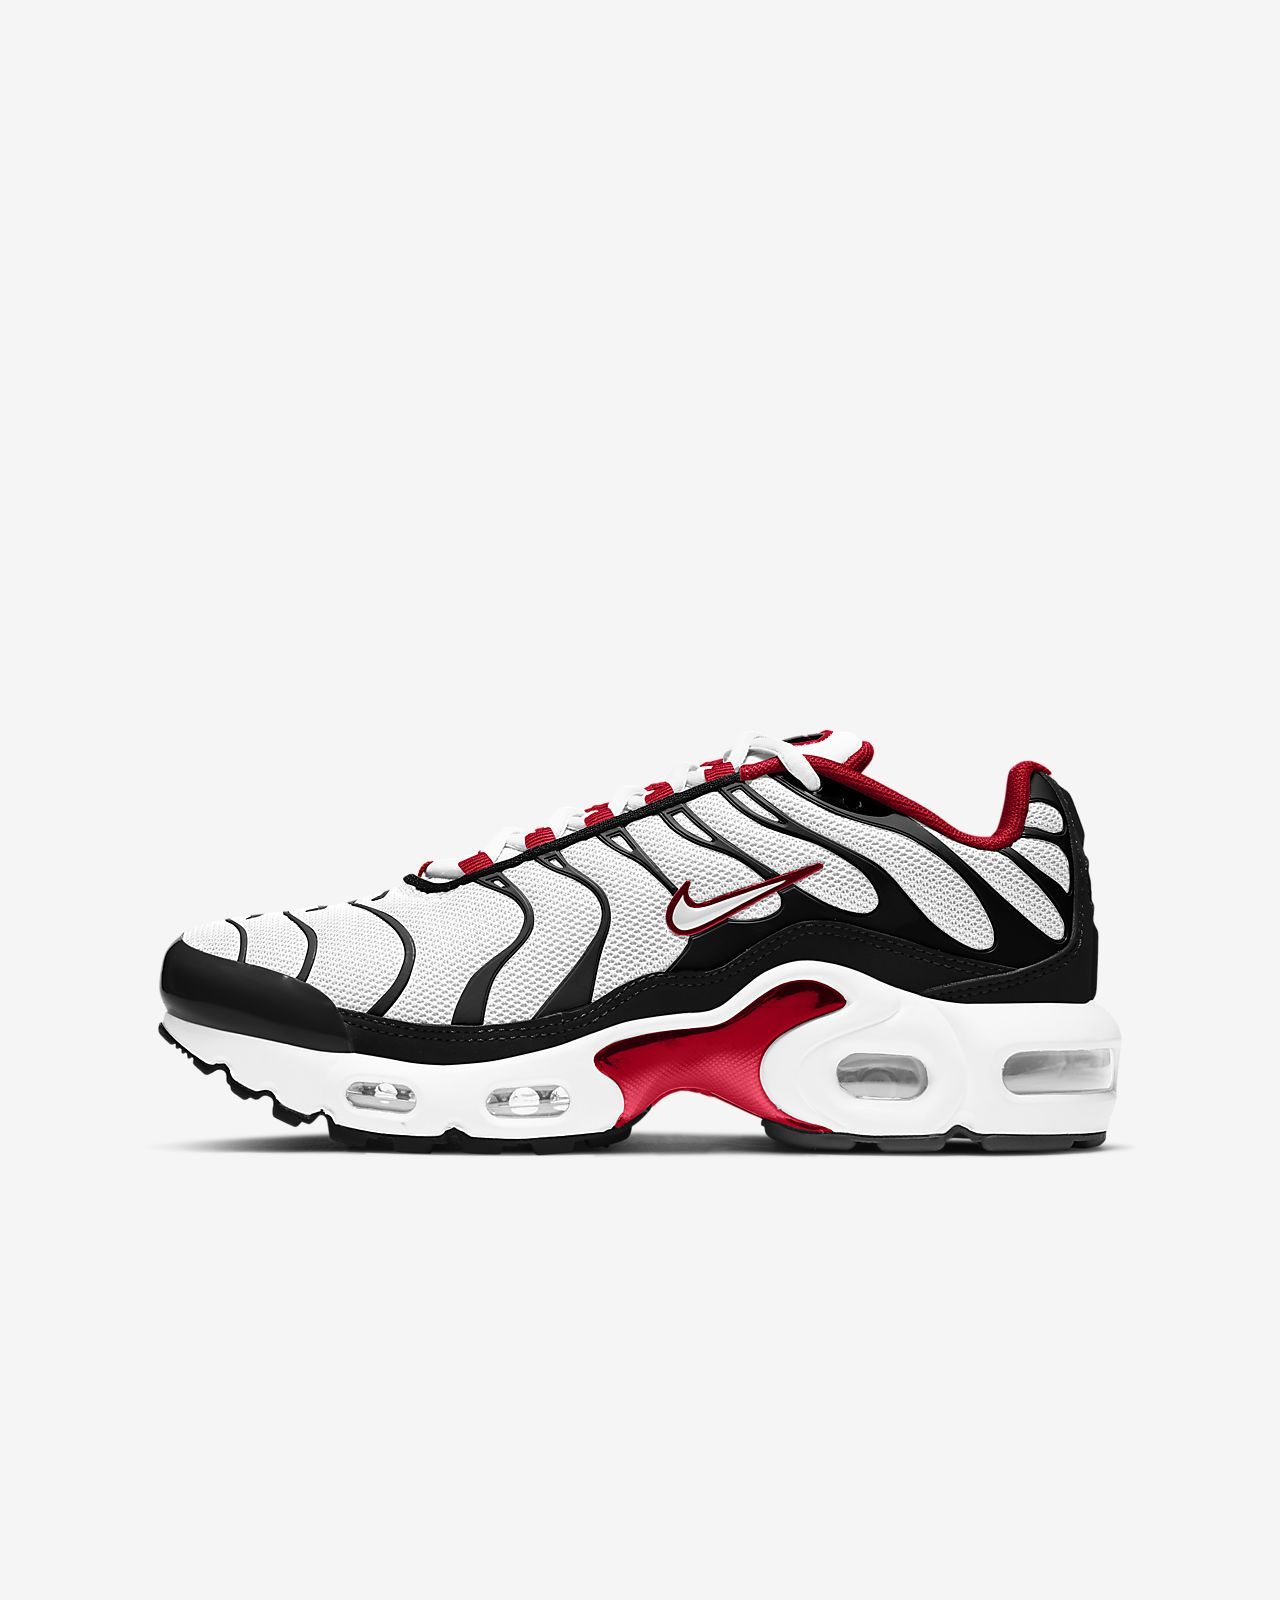 nike air max plus tn nere